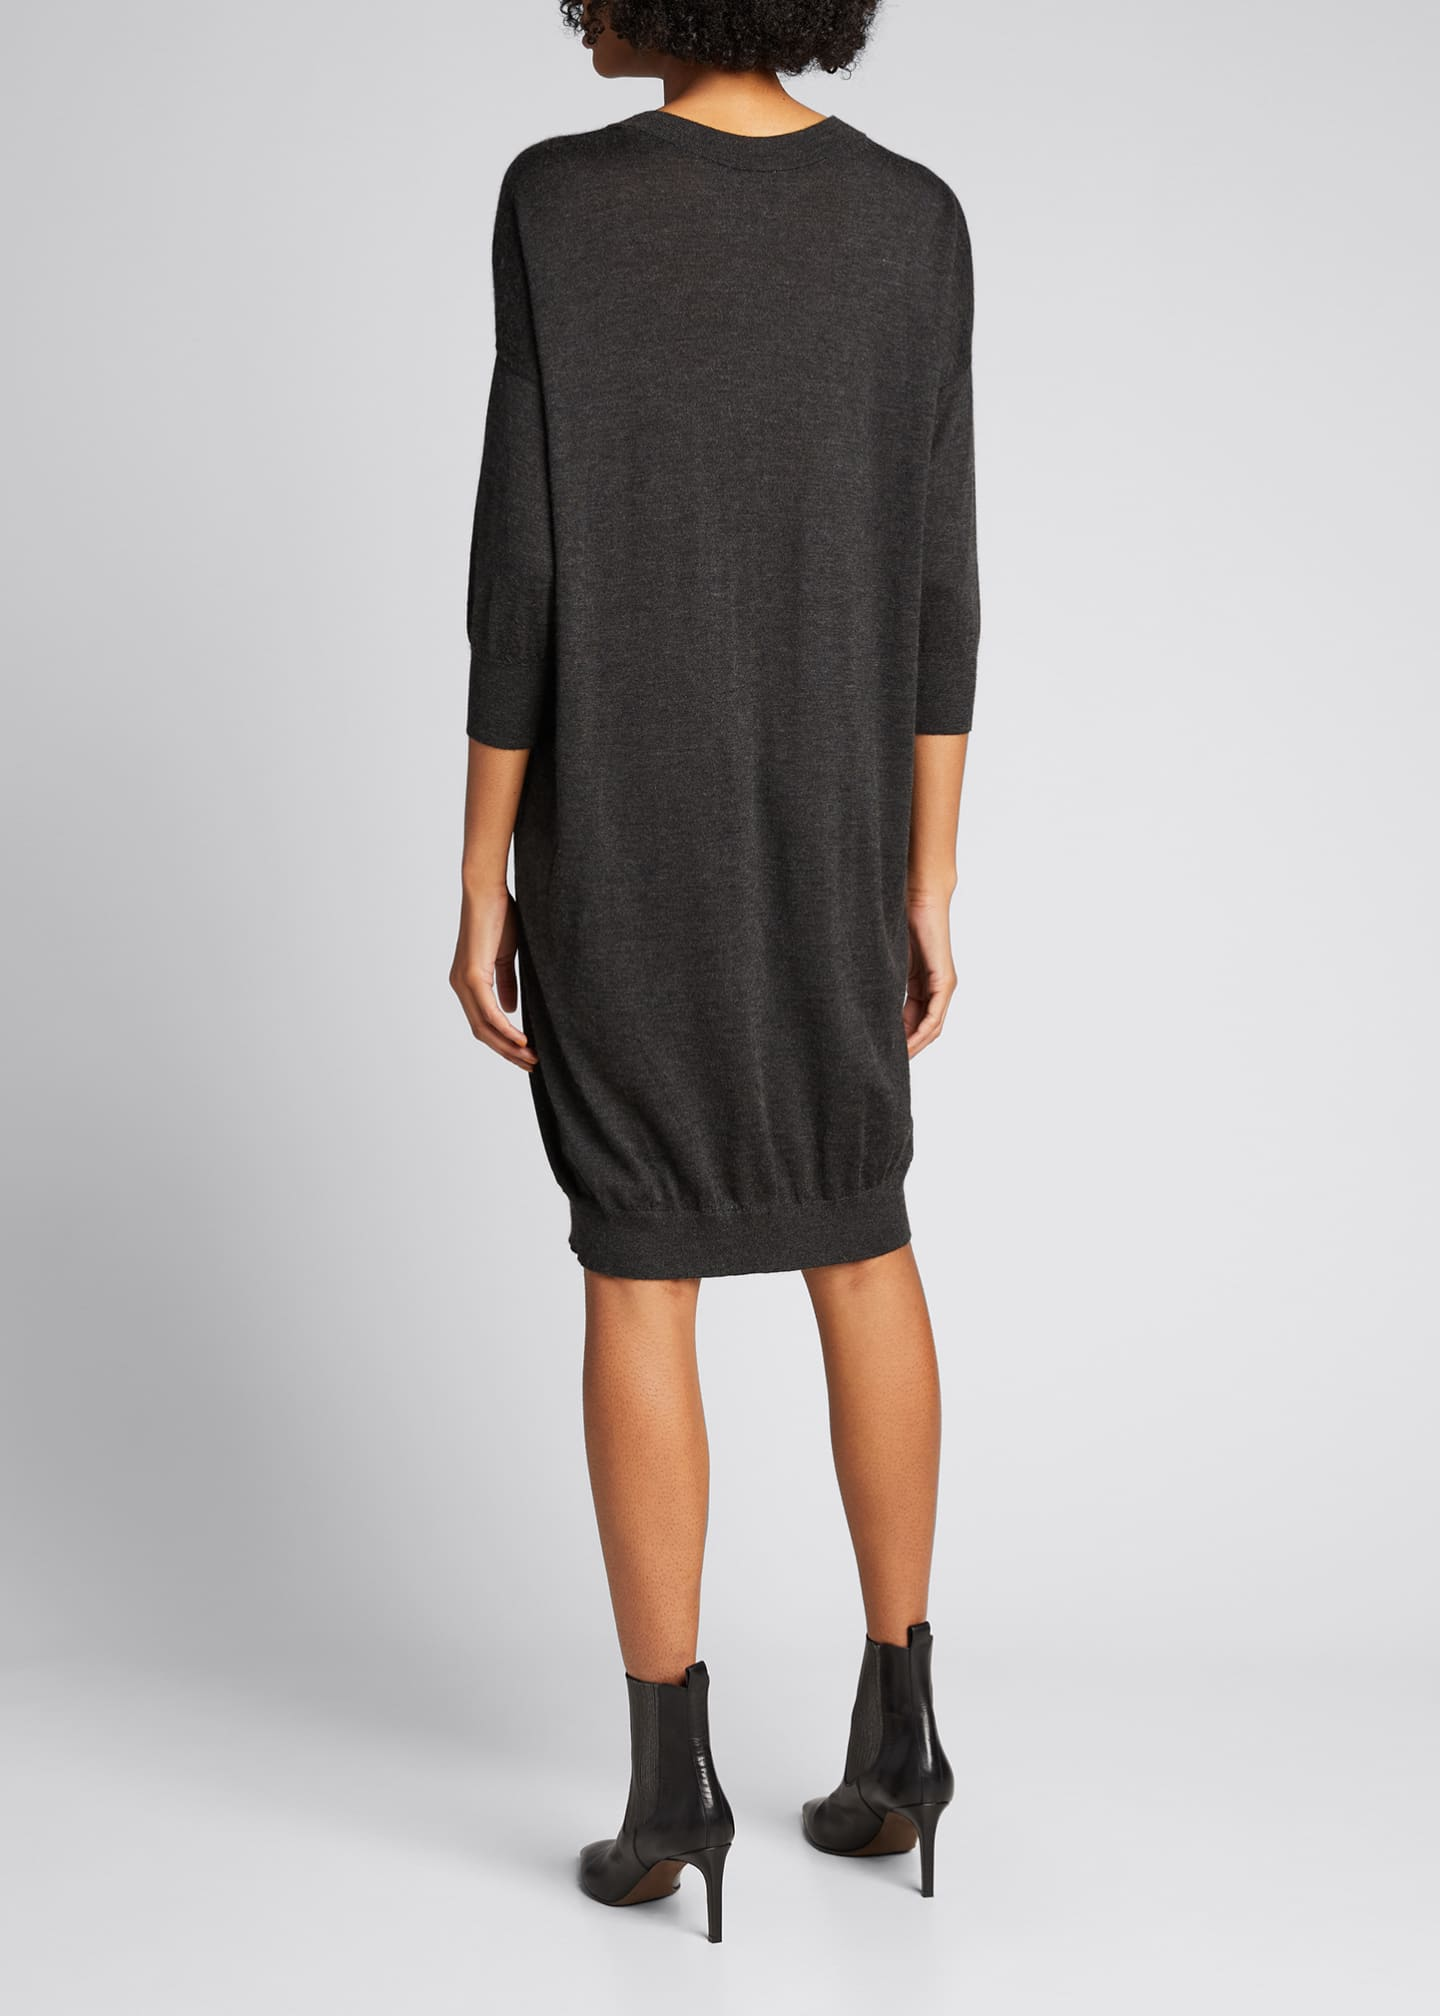 Image 2 of 5: Cashmere Silk Knit Dress with Monili Strap